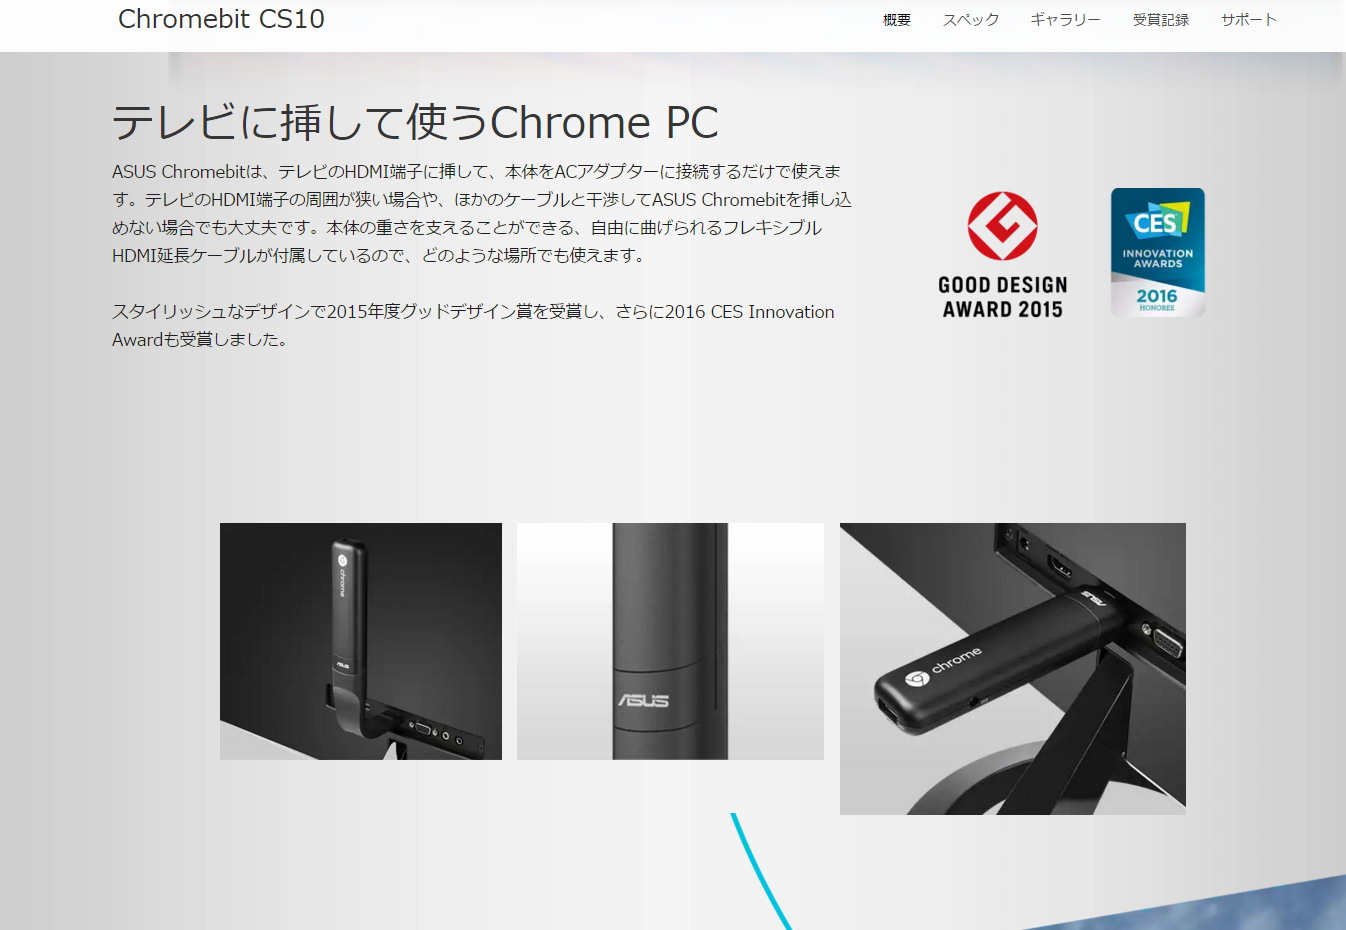 1153-201601_ASUS Chromebit CS10 02